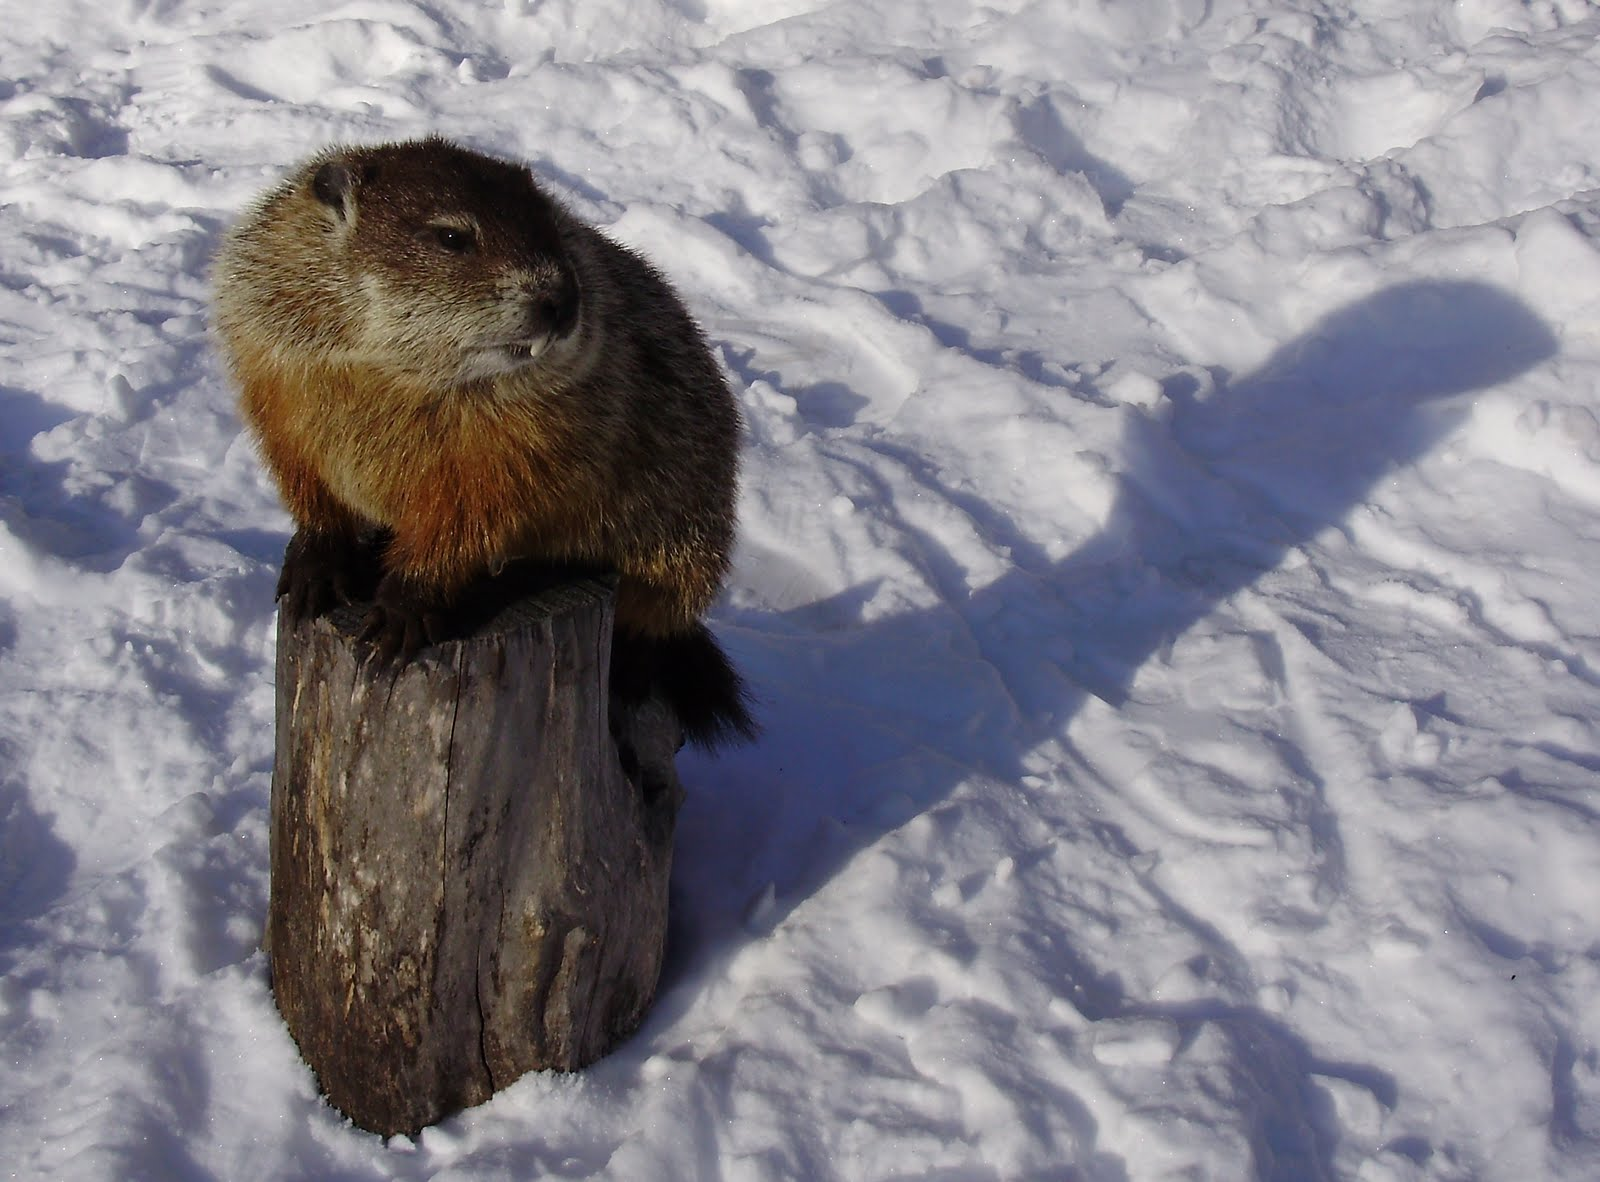 The Story Of The Groundhog And His Shadow